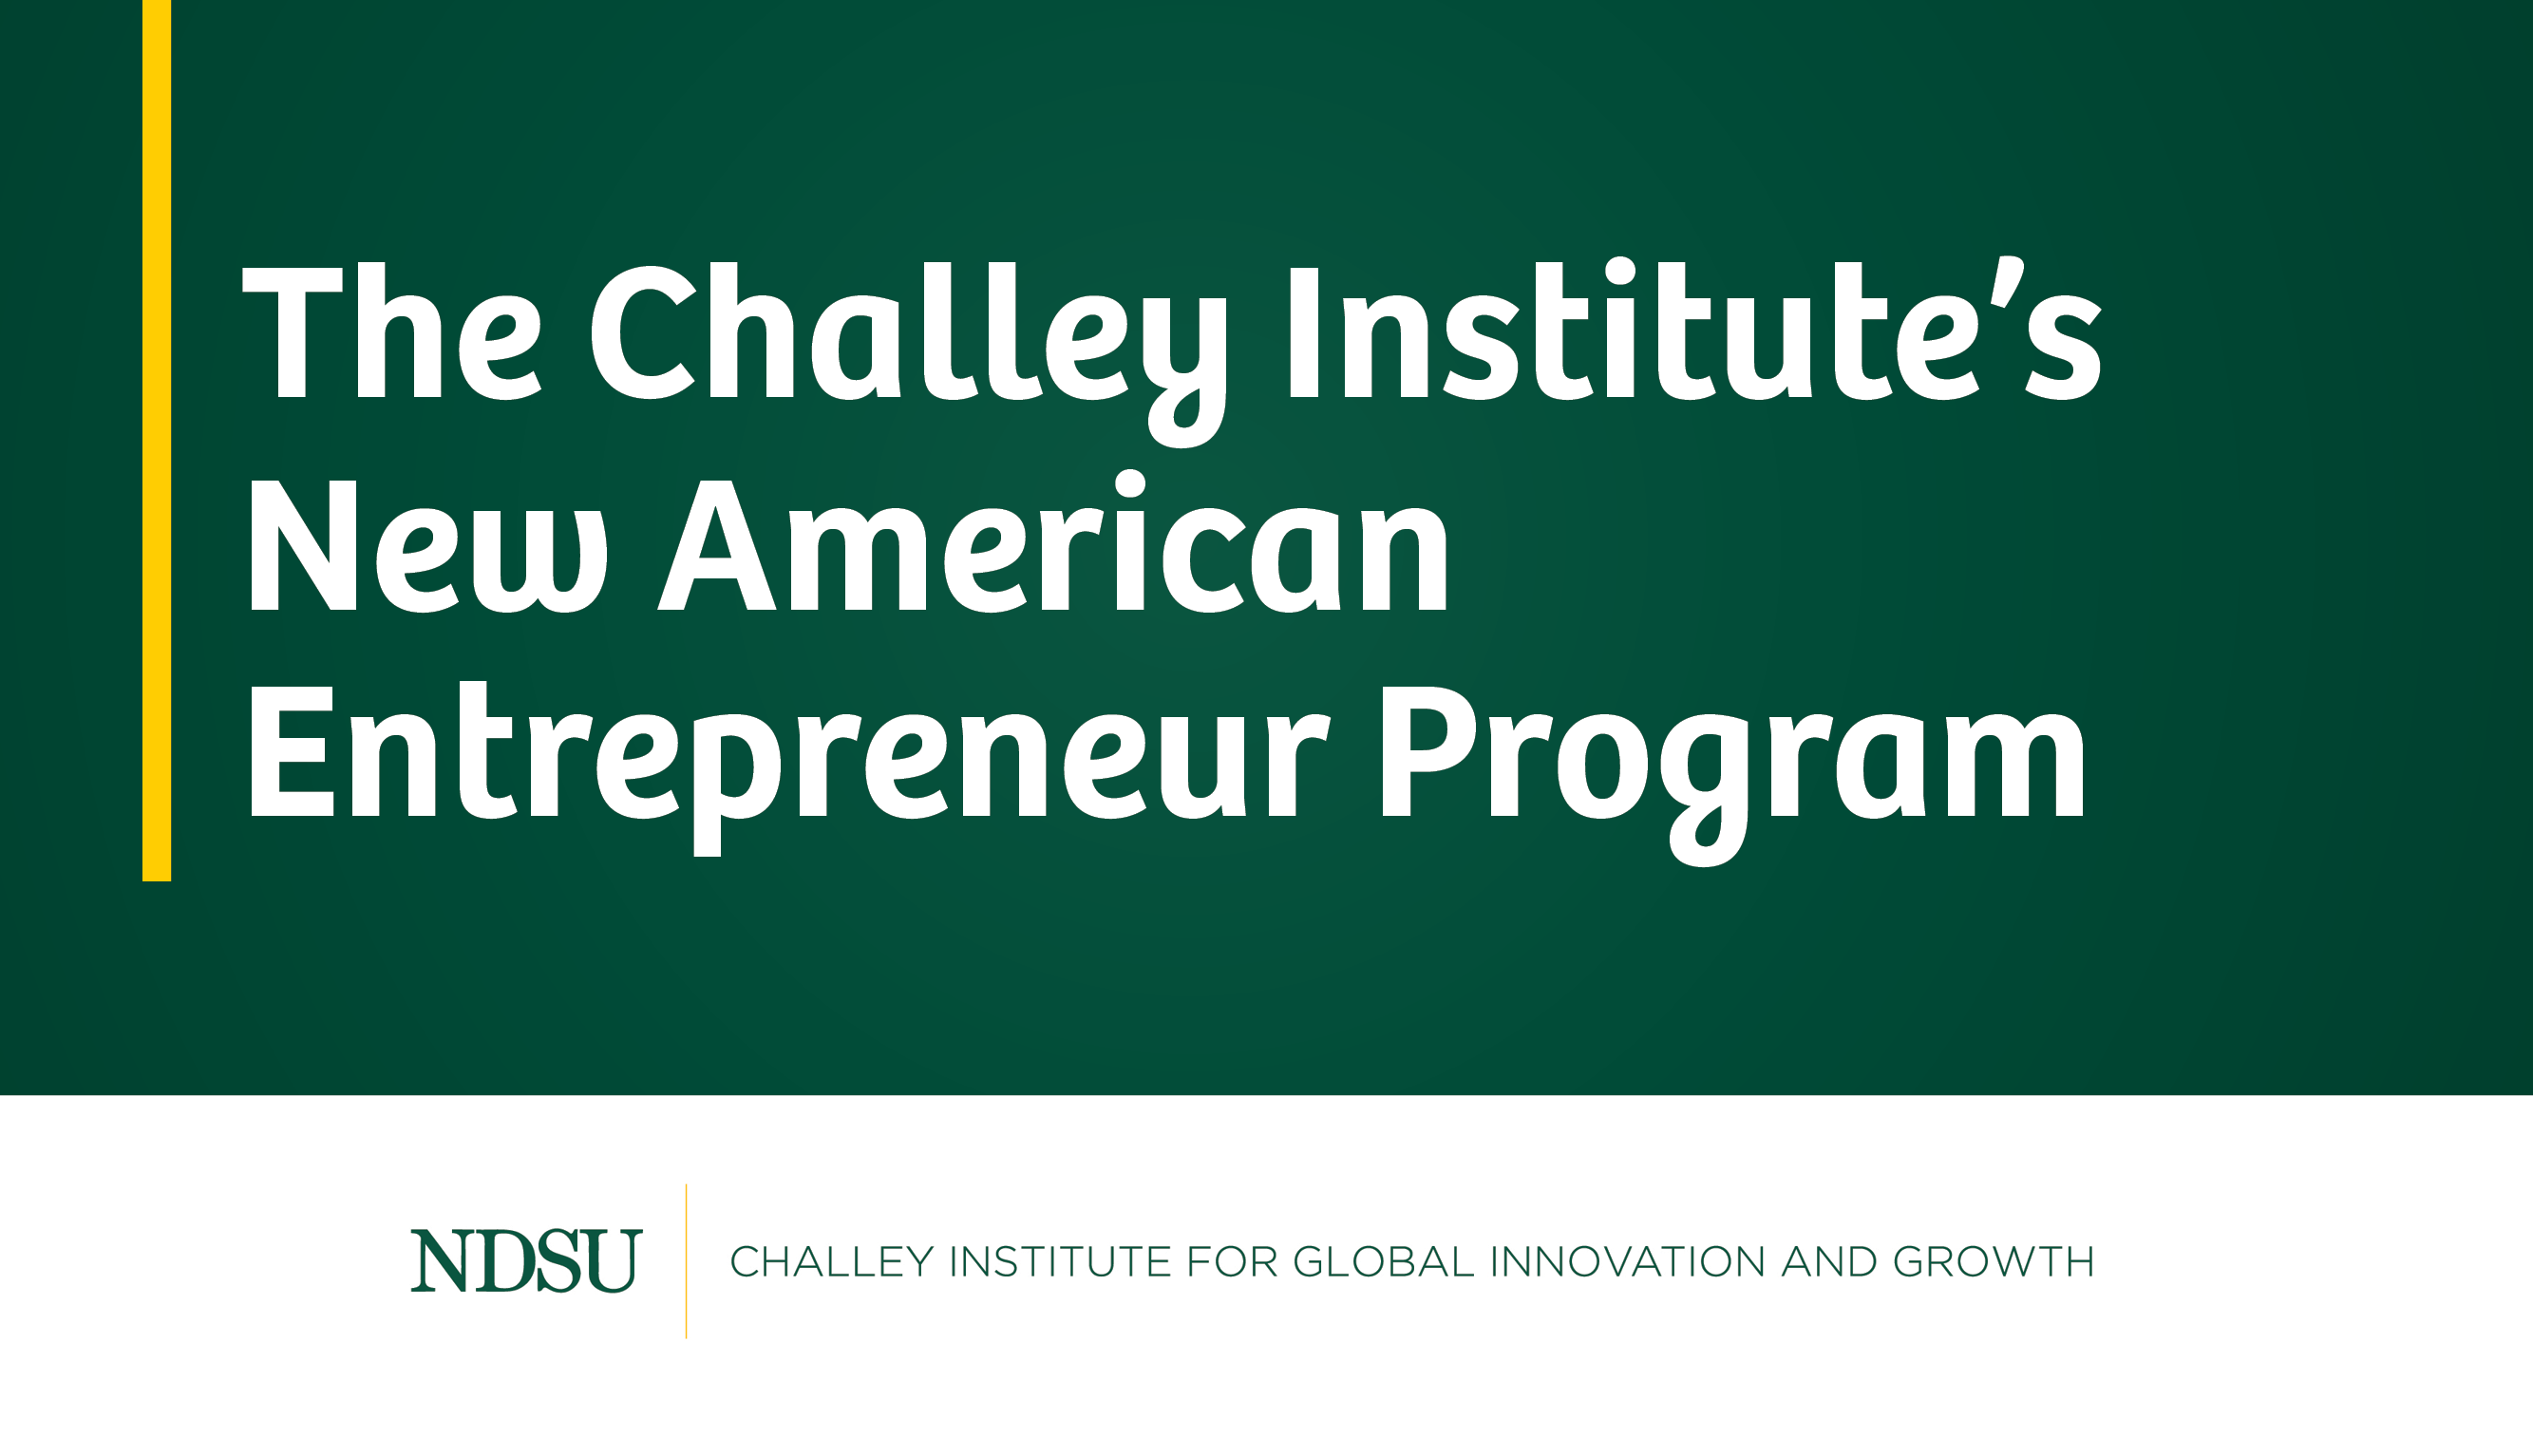 Challey Institue's New American Program